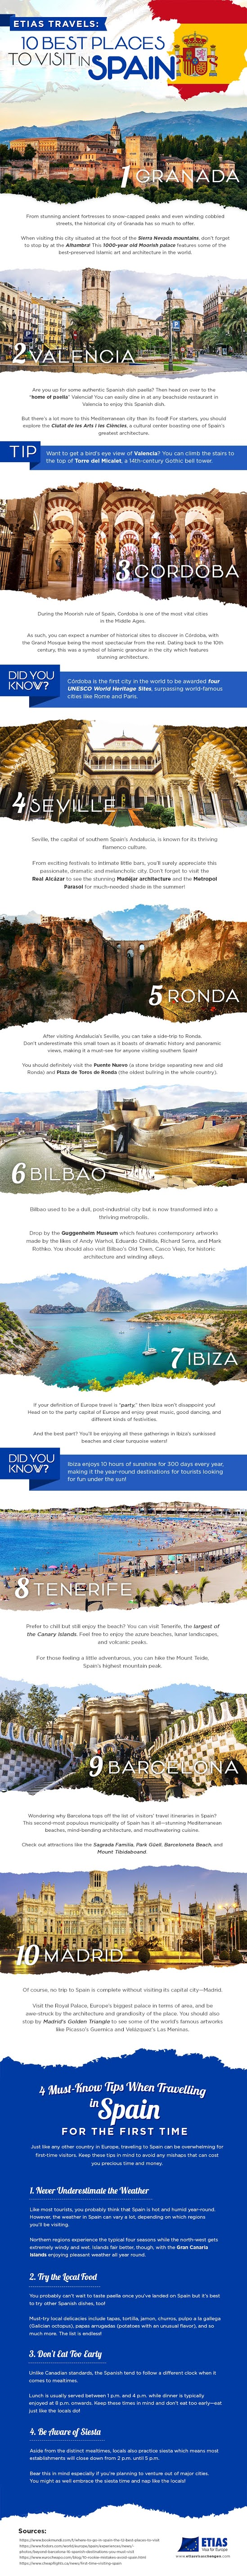 10 Best Places To Visit in Spain #infographic